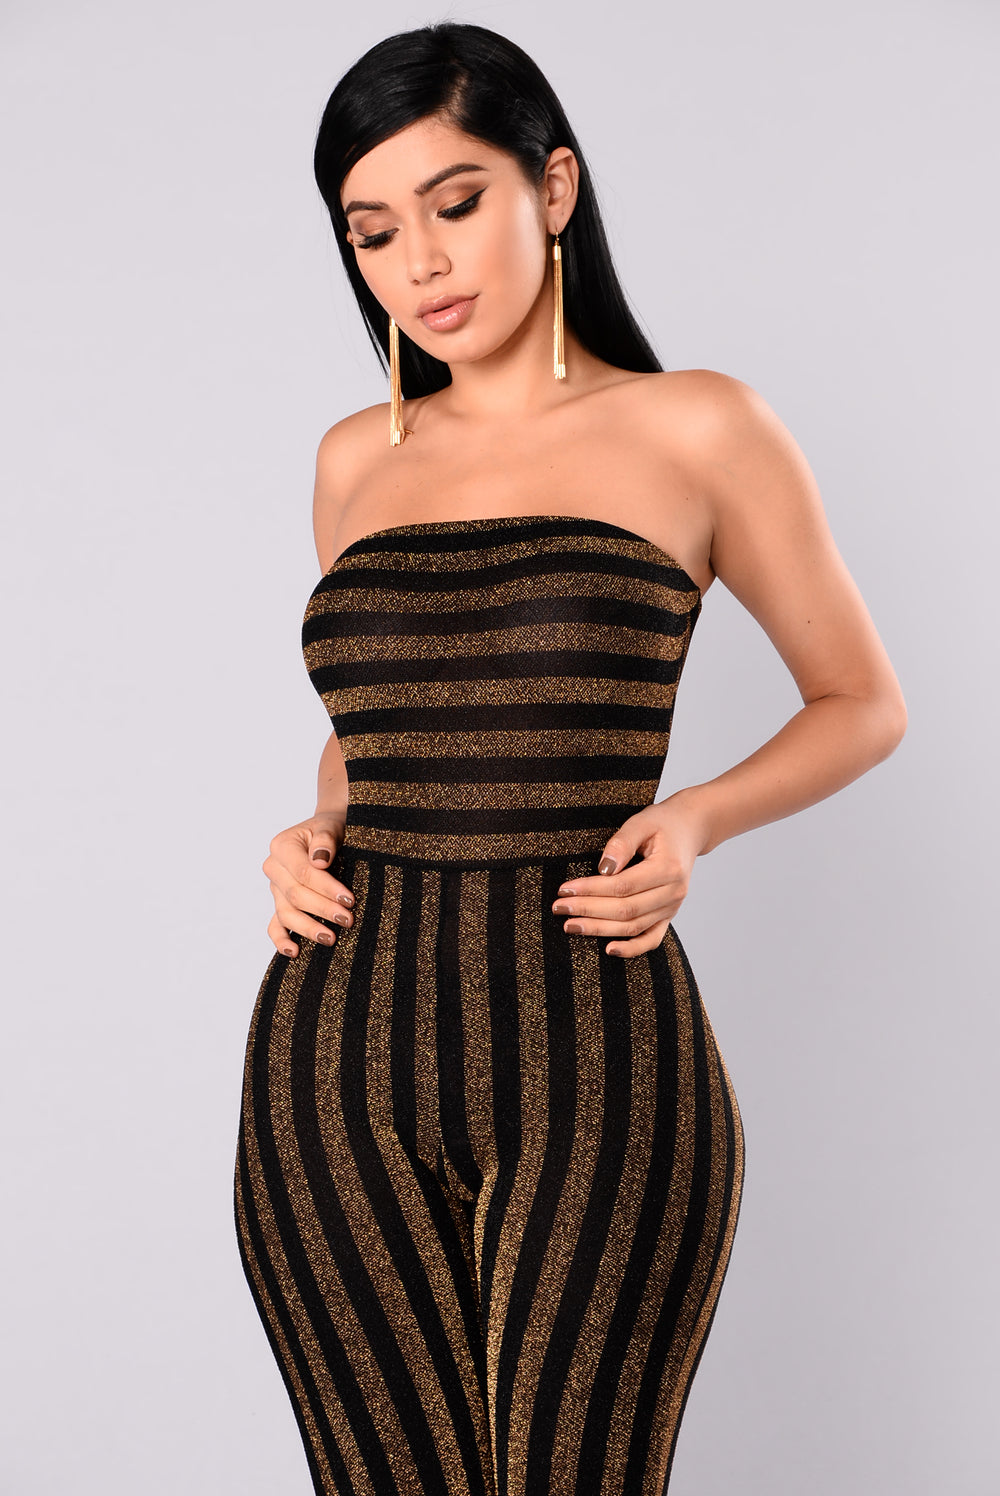 Down And Counting Striped Jumpsuit - Gold/Black